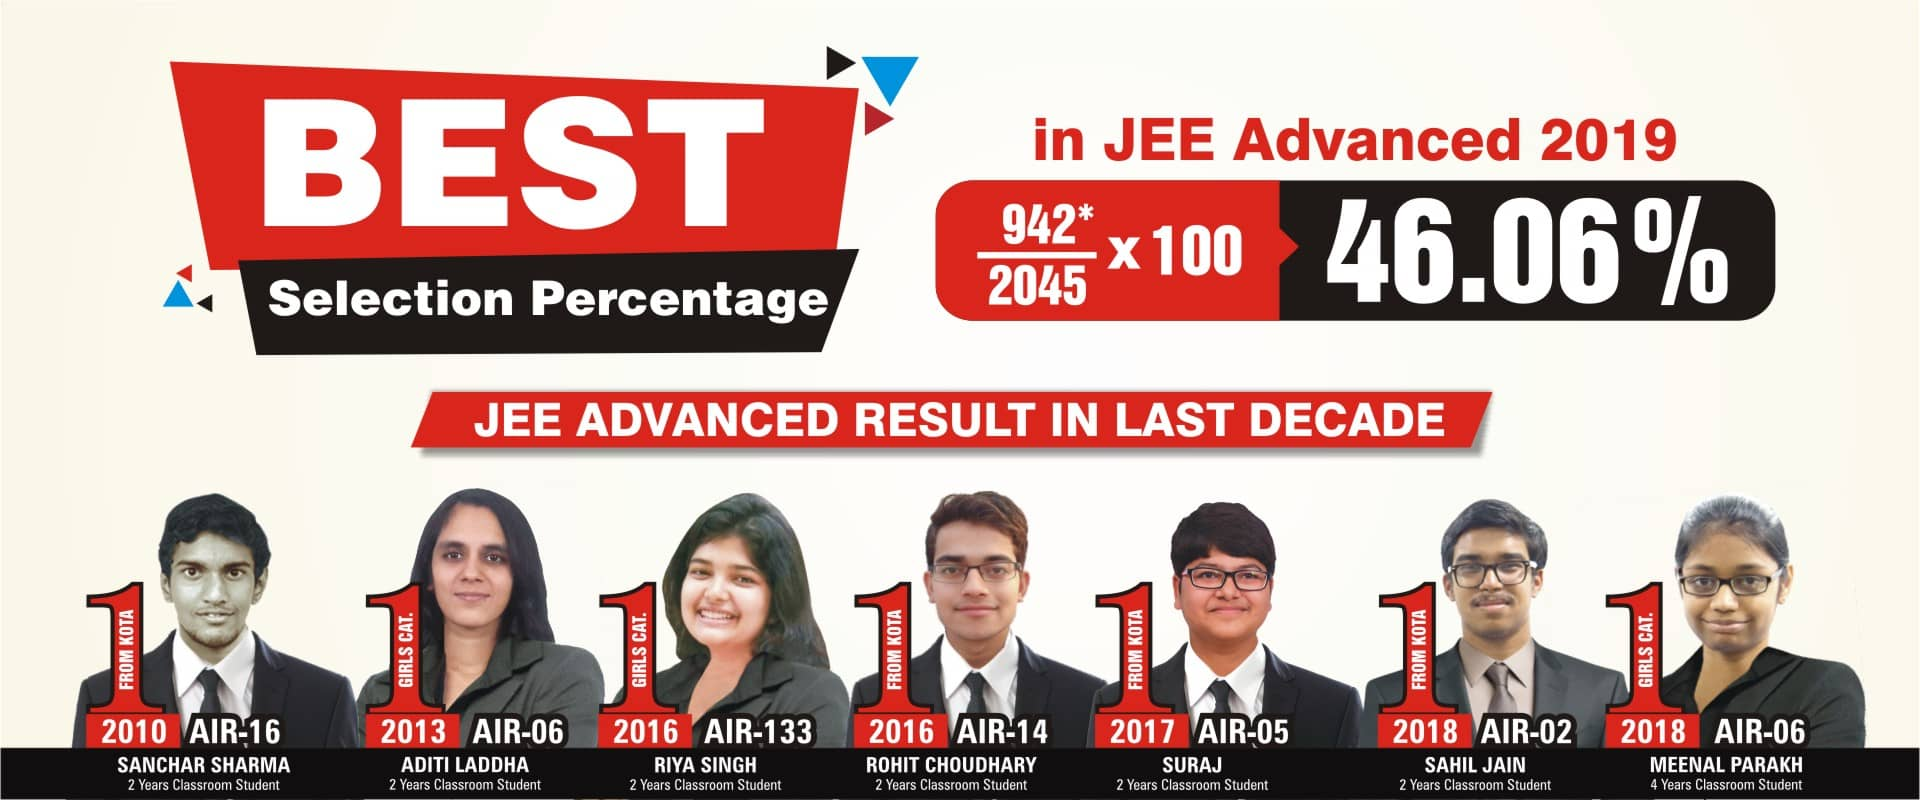 jee advanced result 2019